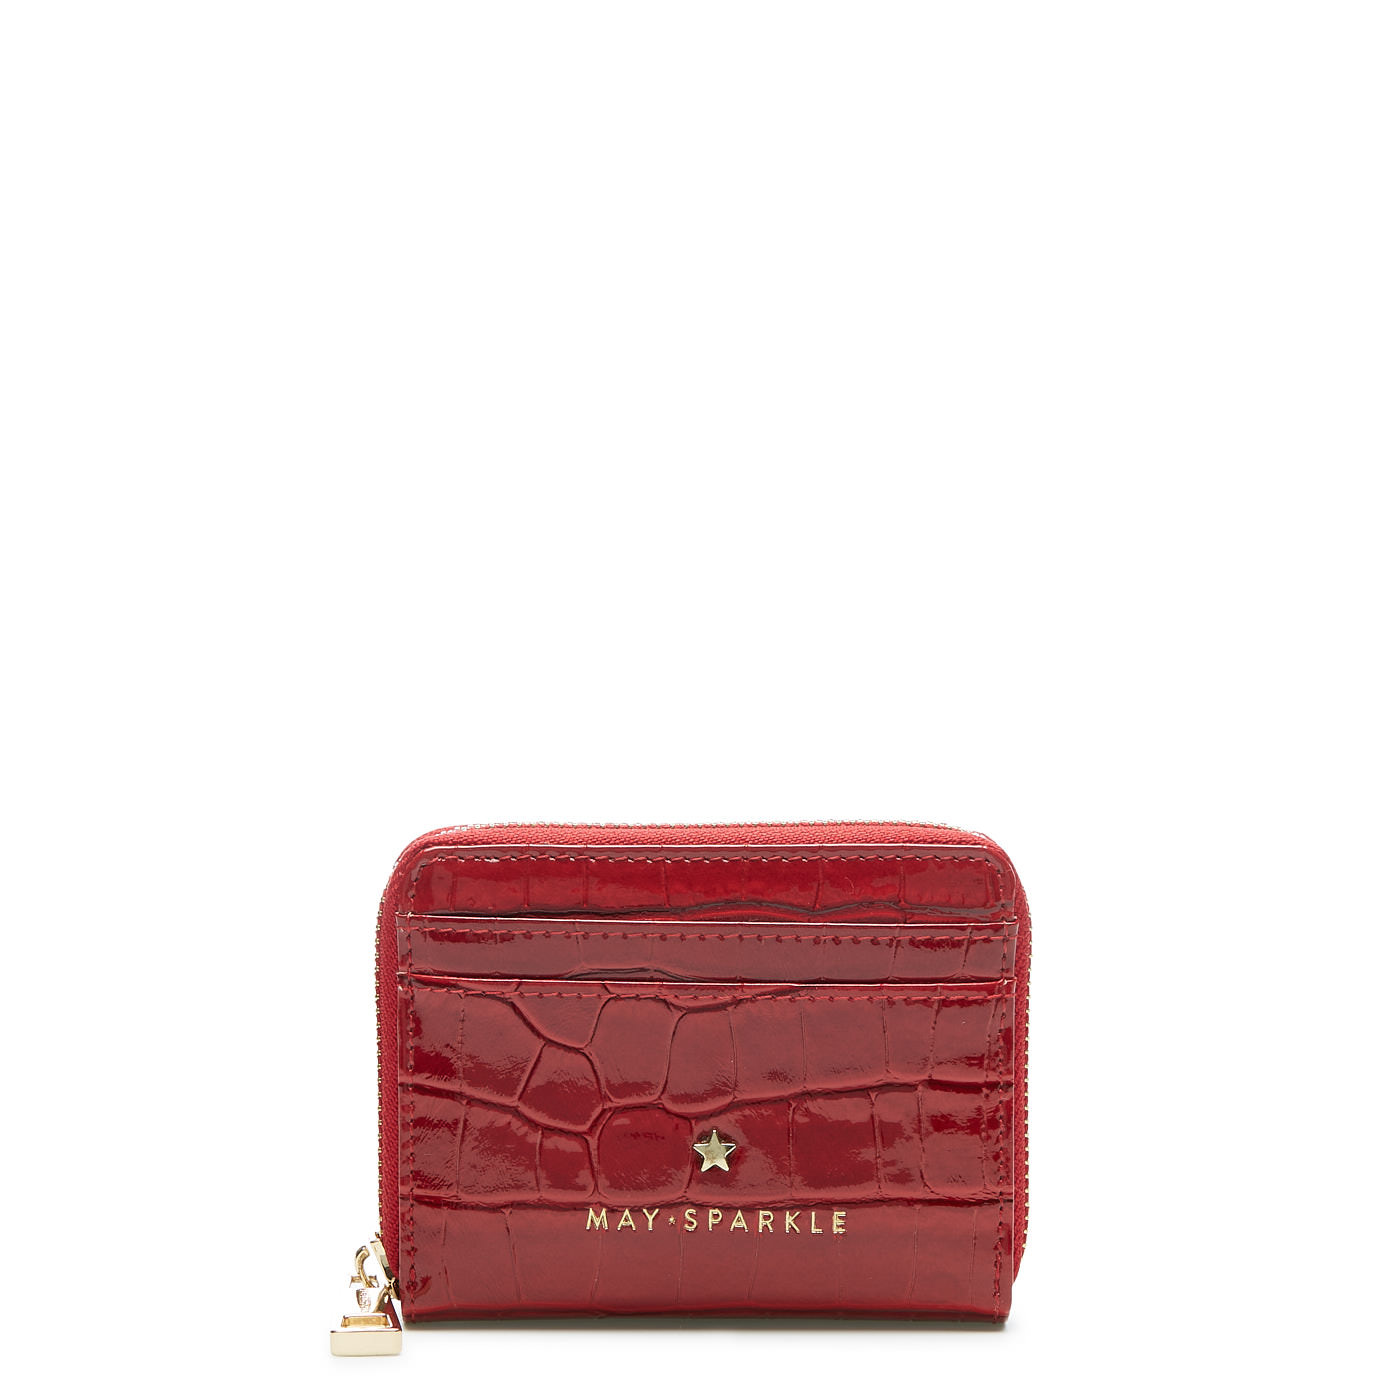 May Sparkle Festive red croco Zipper wallet